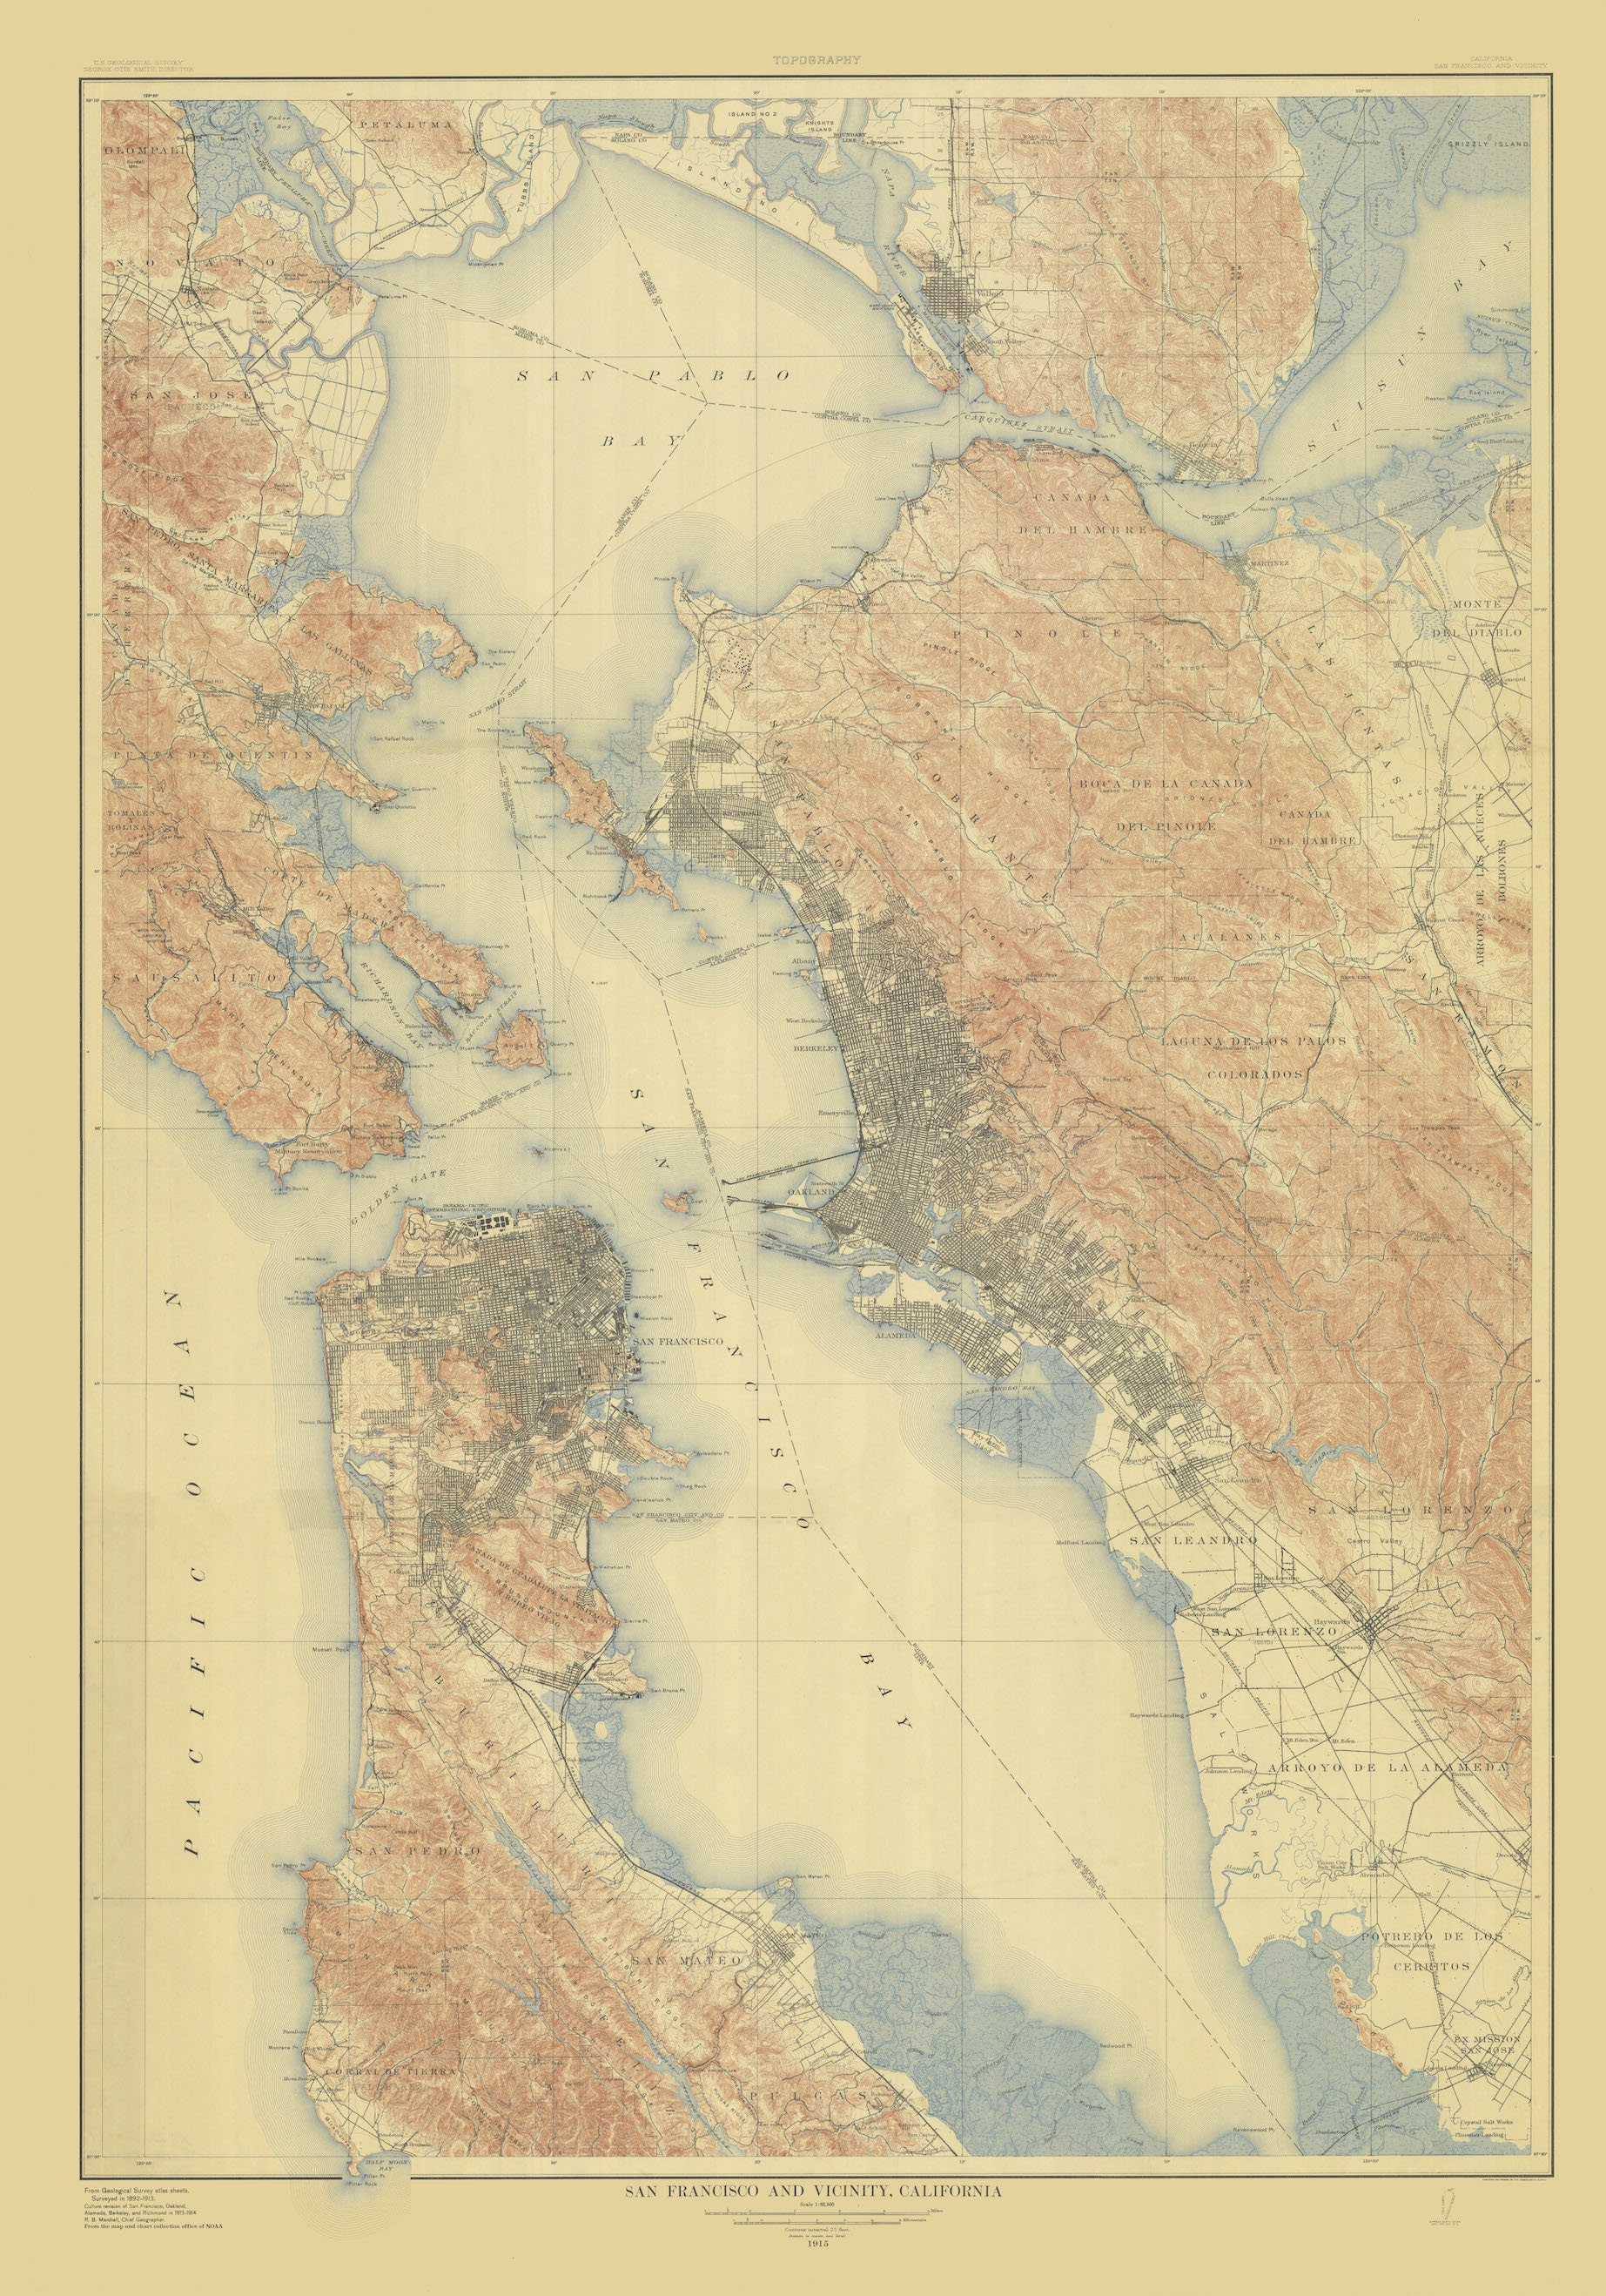 San Francisco Bay Map - 1915 on sfo bay map, central valley map, mojave desert map, hudson bay map, chicago map, delaware bay map, san pablo bay map, puget sound map, lake erie map, california map, chesapeake bay map, great basin map, st. helena bay map, sierra nevada map, monterey bay map, festival of sail map, lake michigan map, death valley map, angel island map, rocky mountains map,